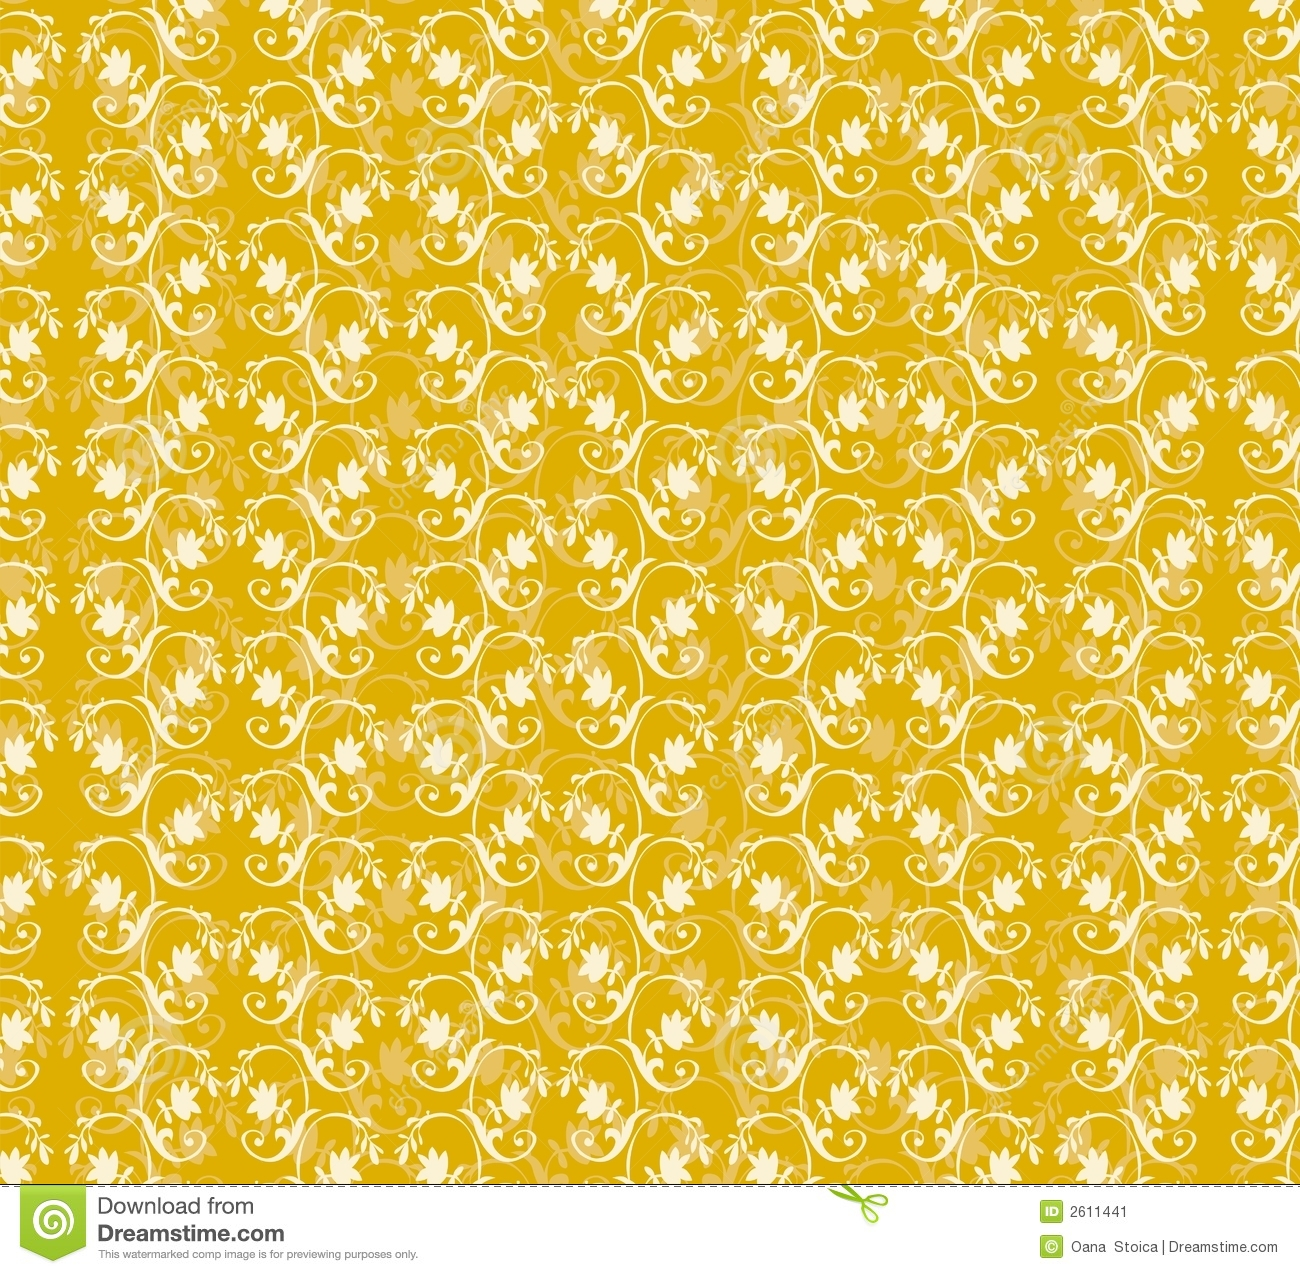 Yellow floral pattern stock vector. Illustration of flower ... Sunflower Vector Black And White